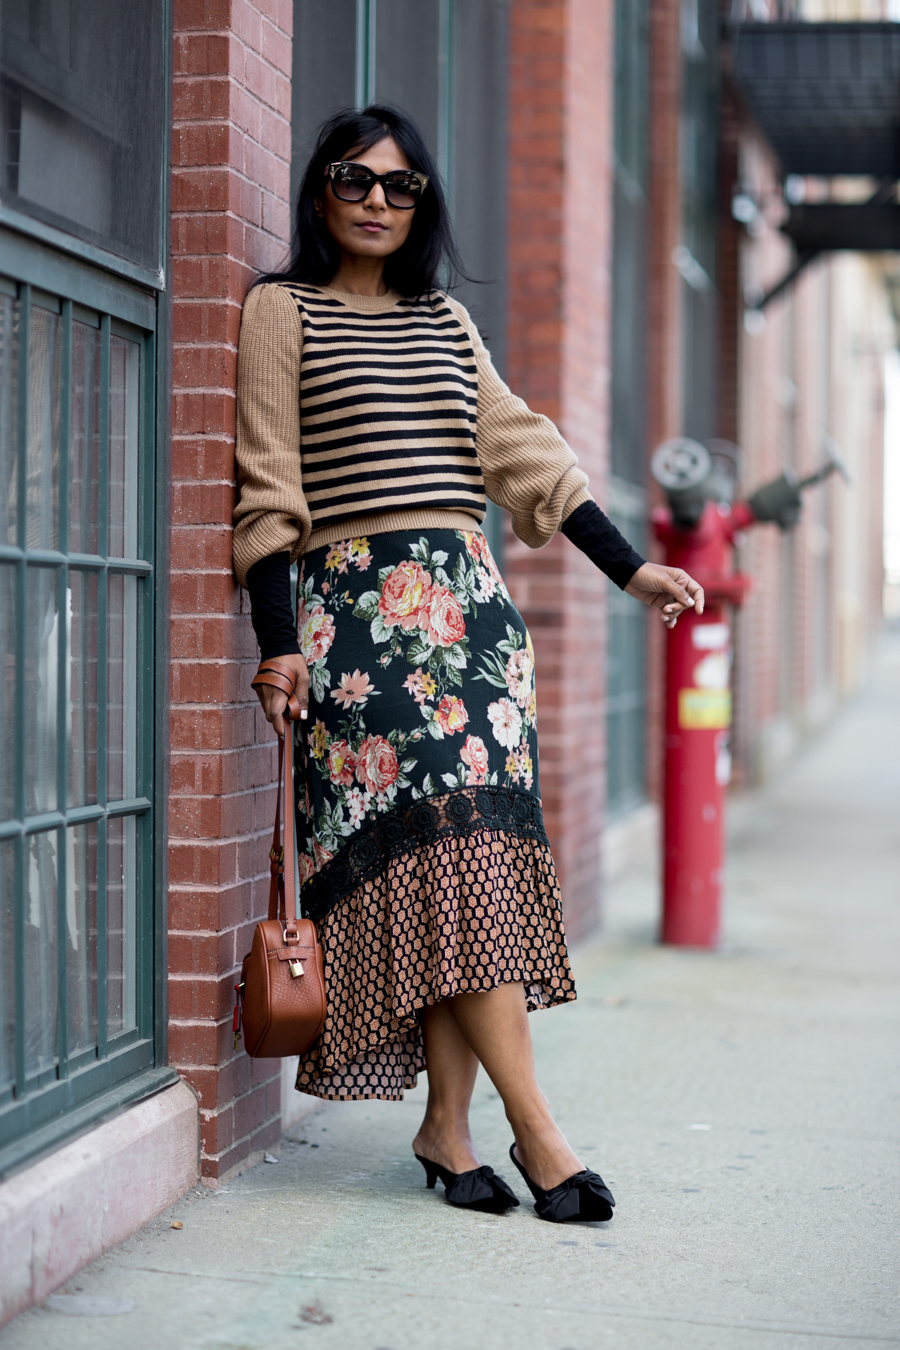 How To Dress Cute on a Budget